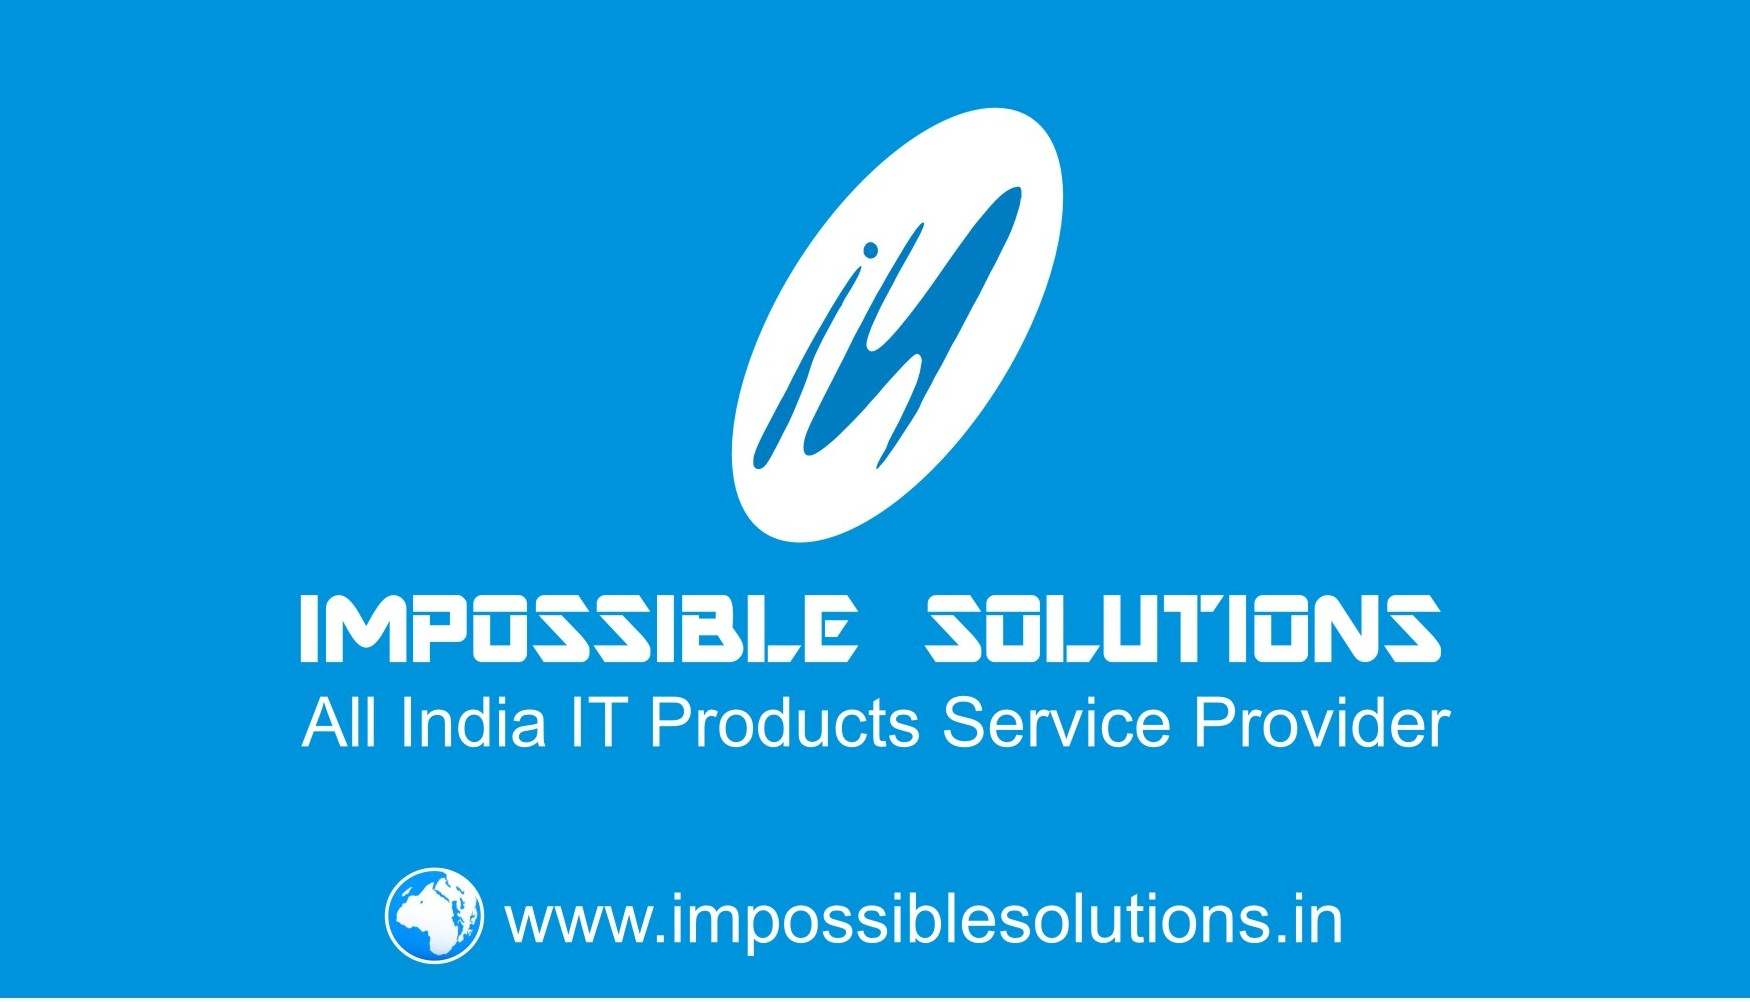 Impossibe Solutions